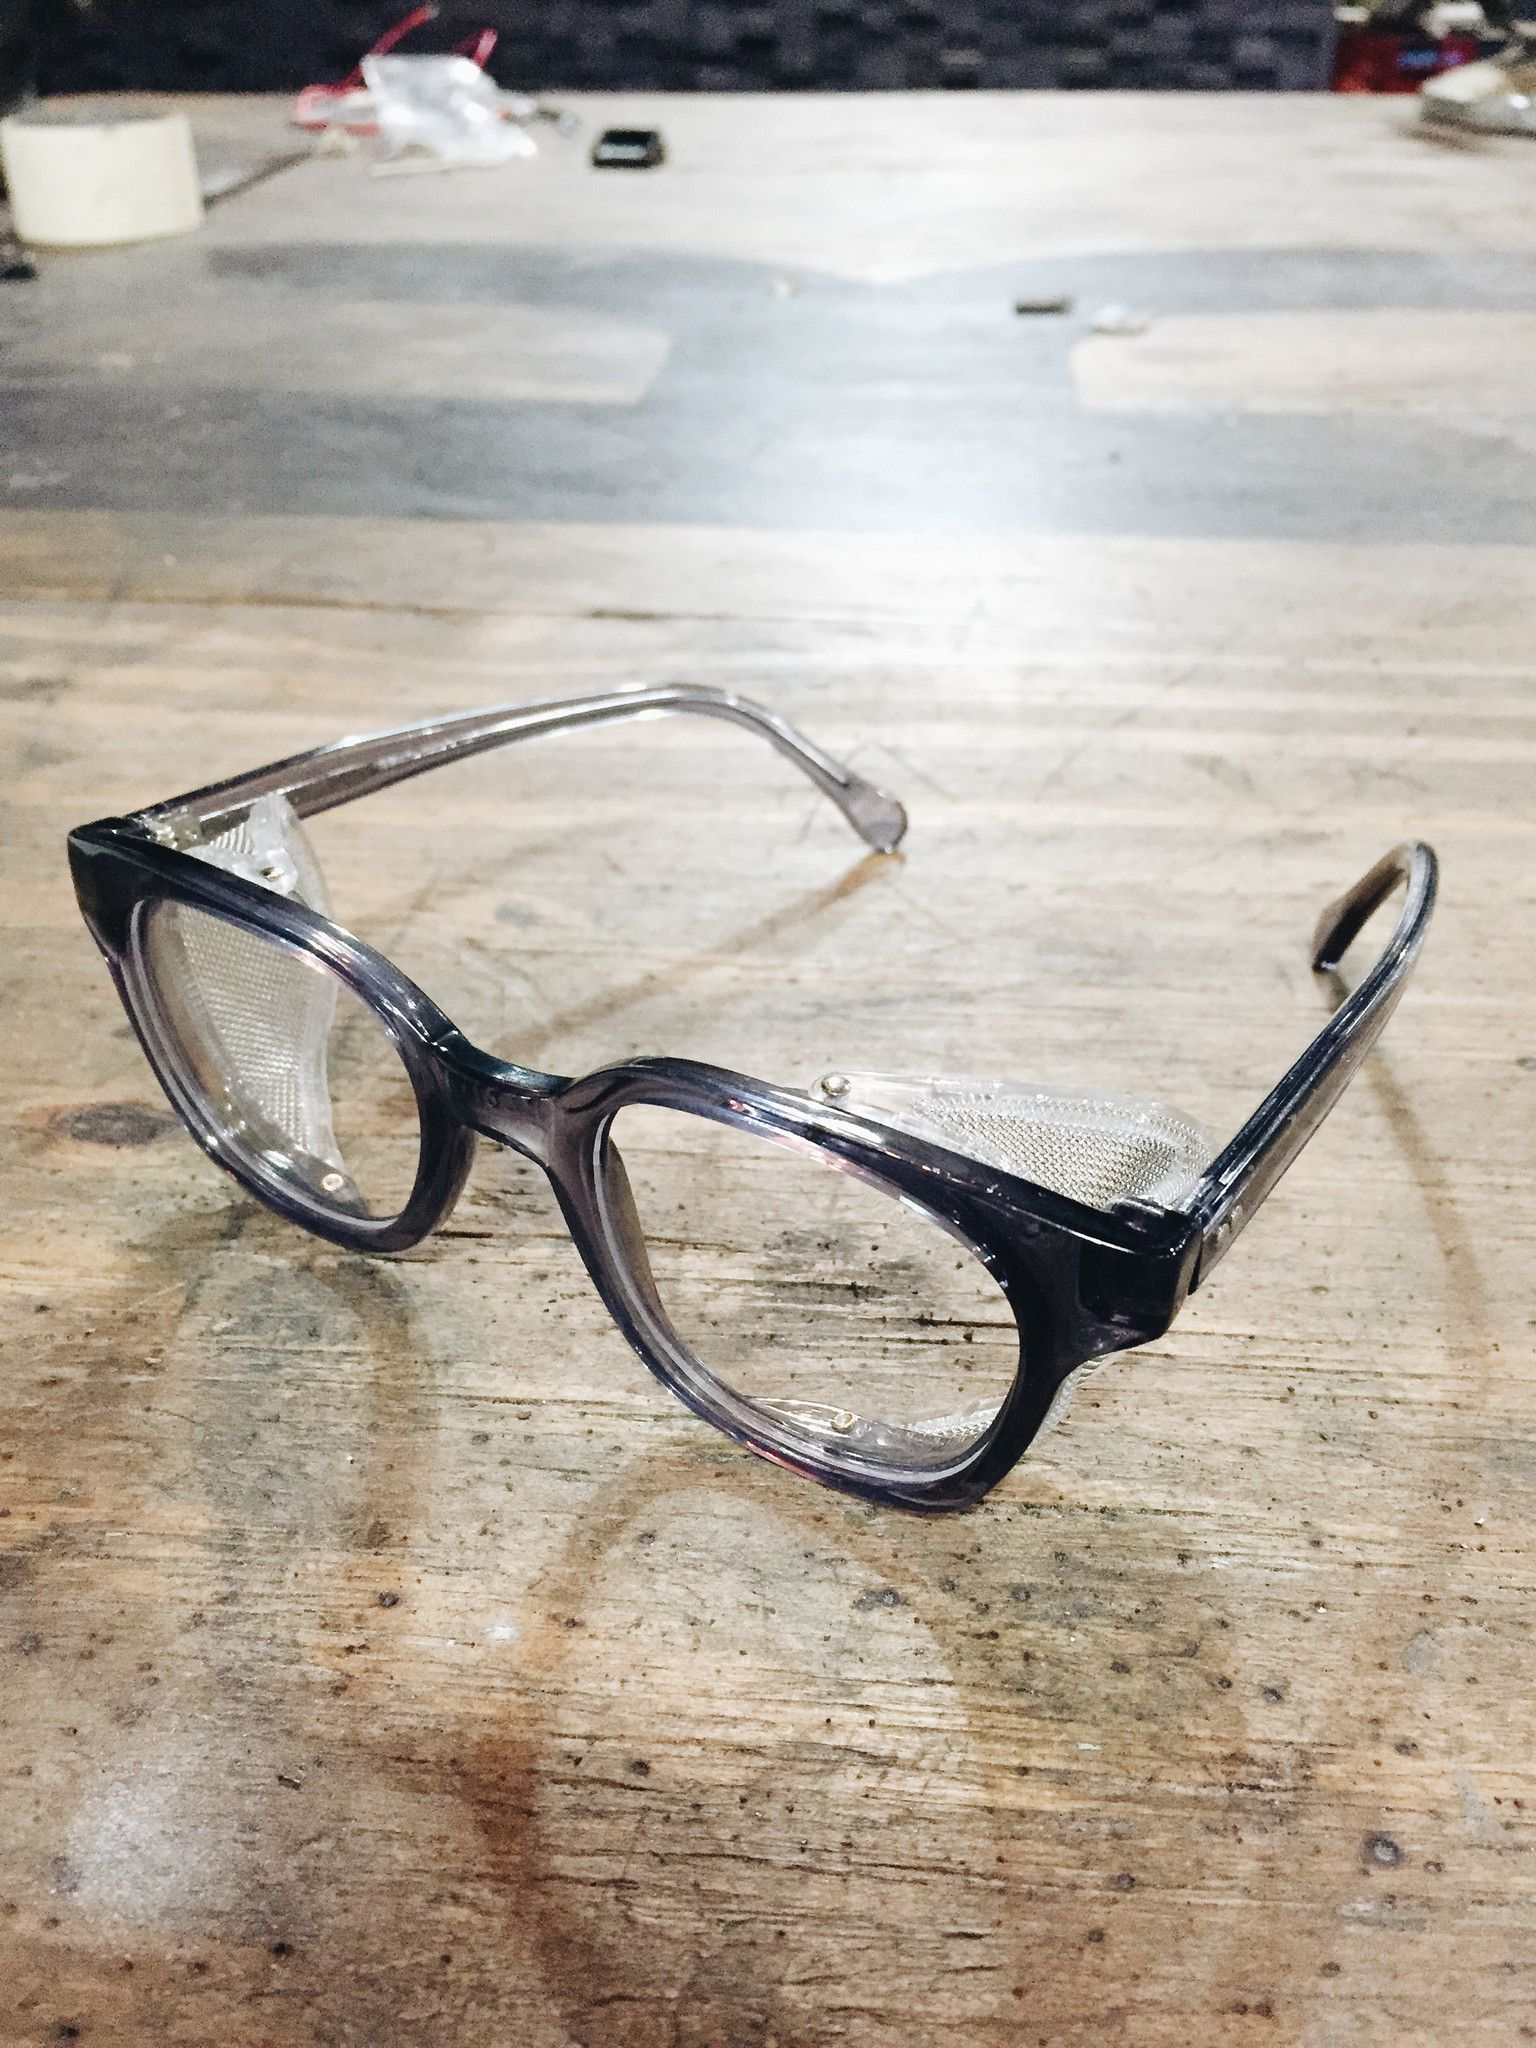 The nux safety glasses glasses safety glass safety